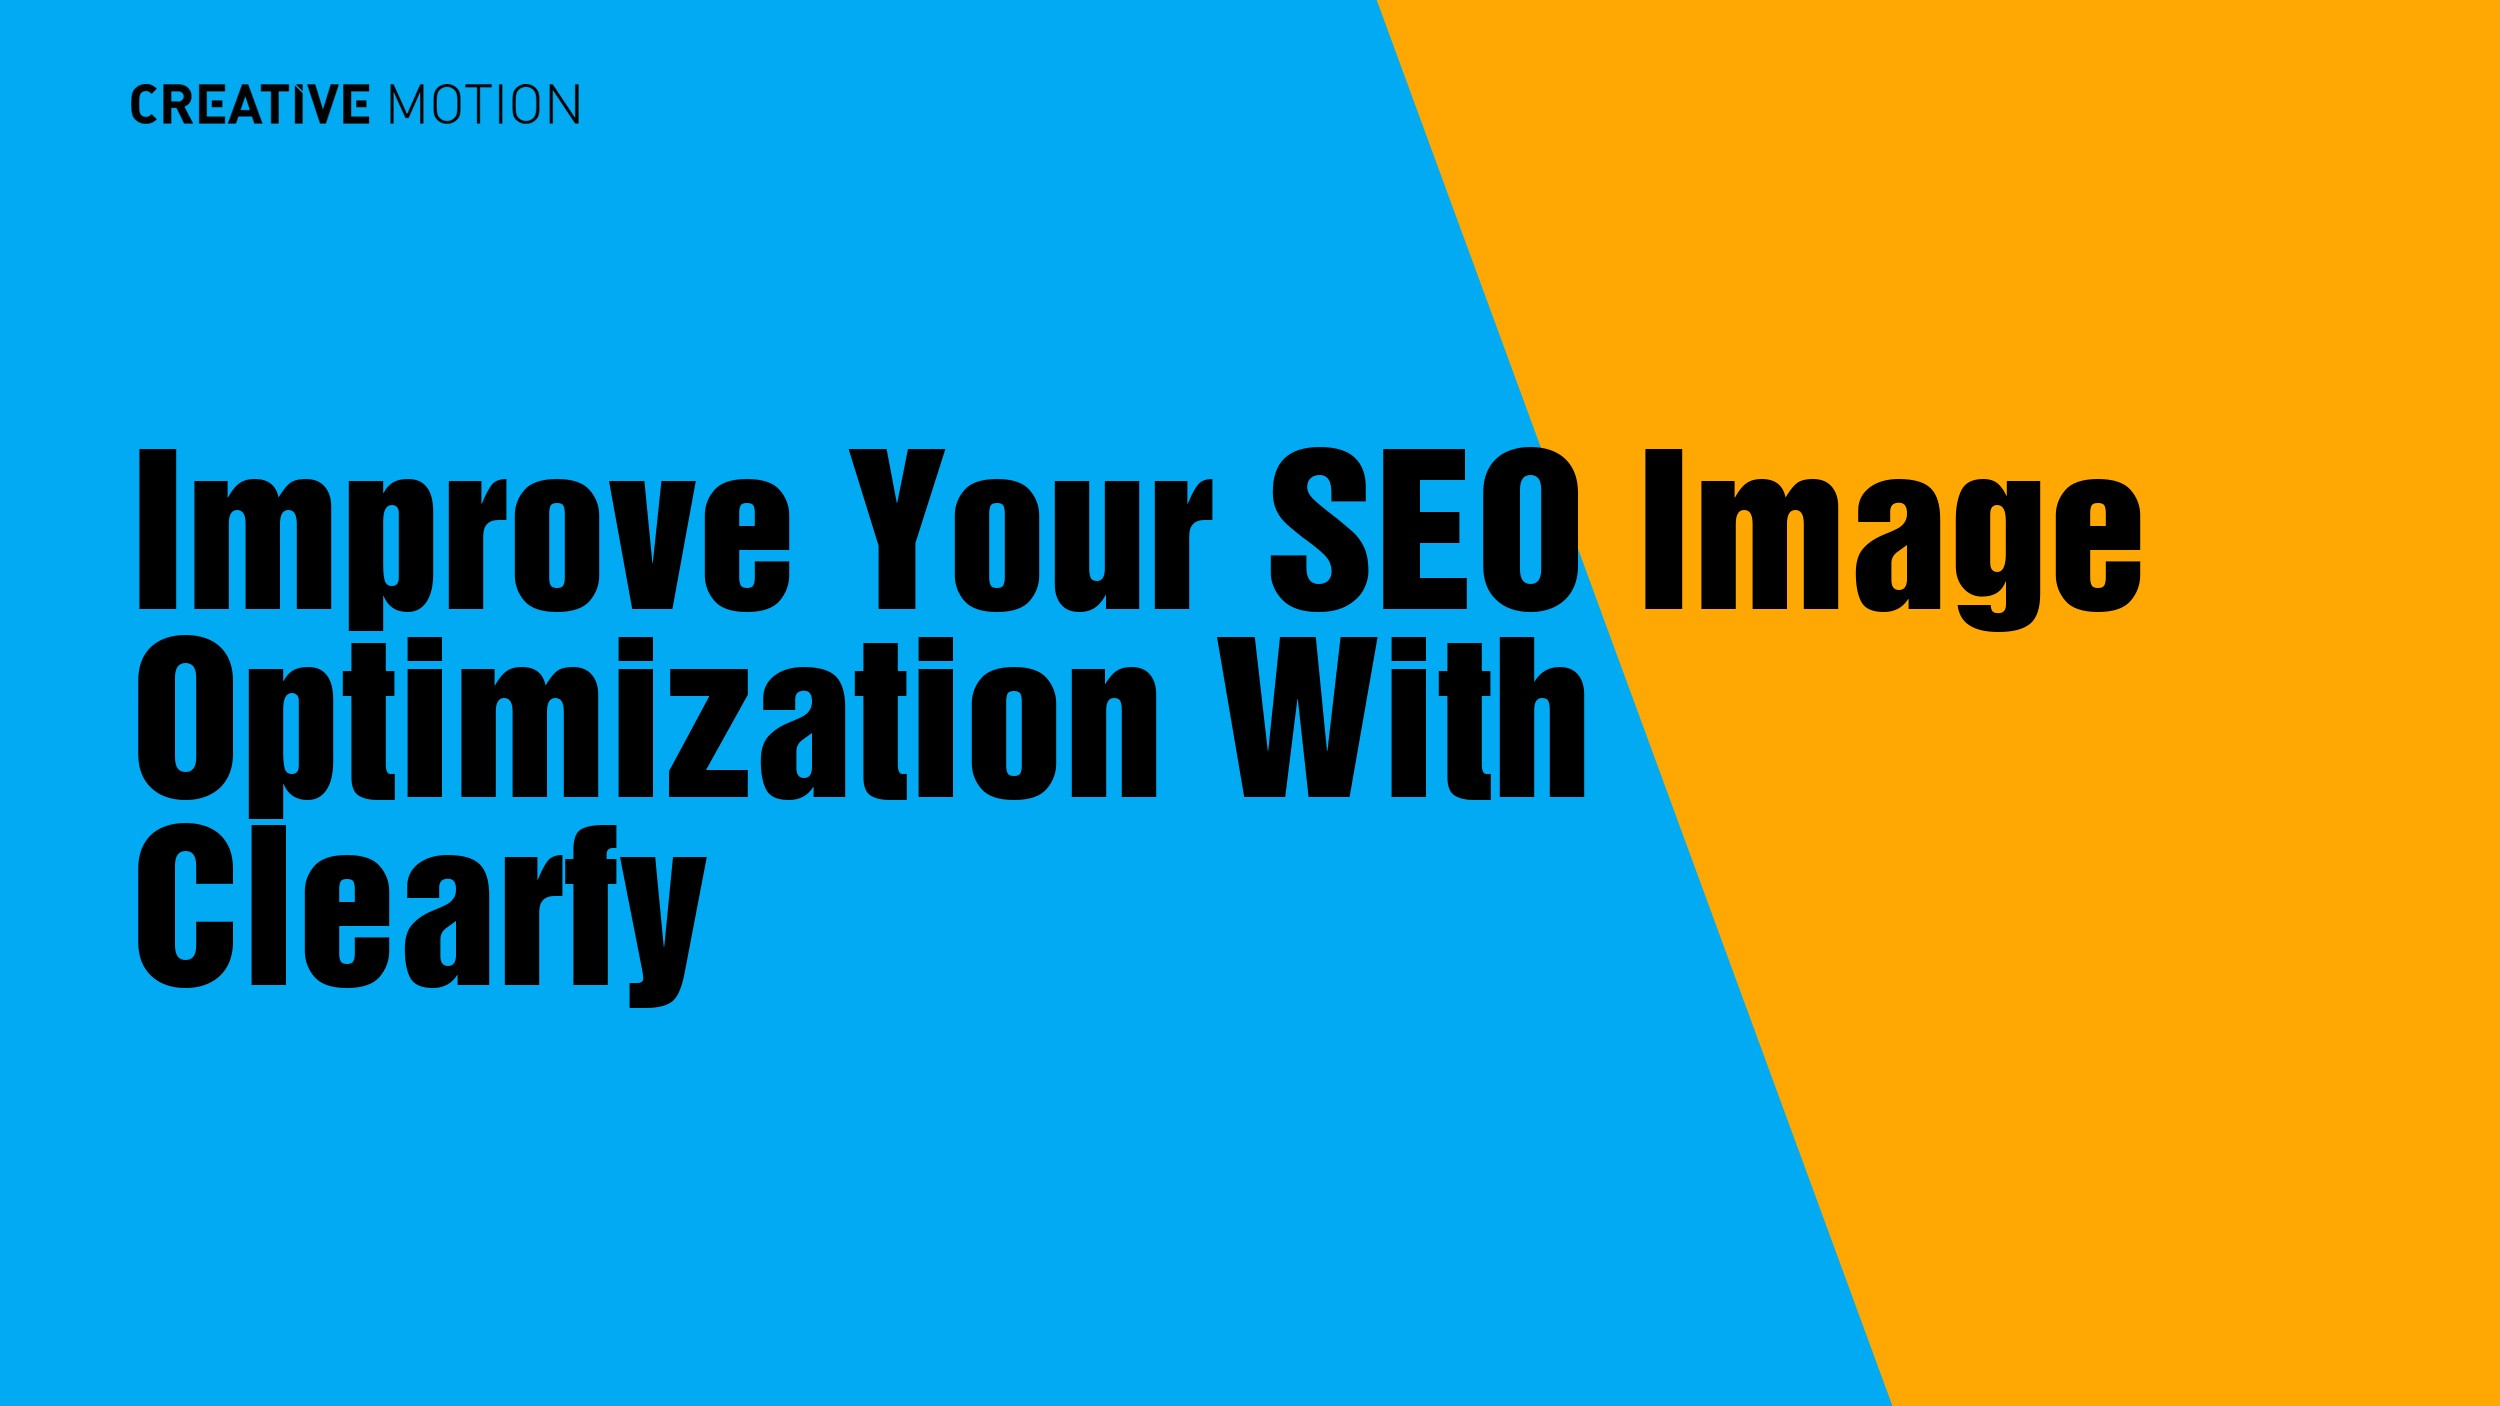 Improve Your SEO Image Optimization With Clearfy